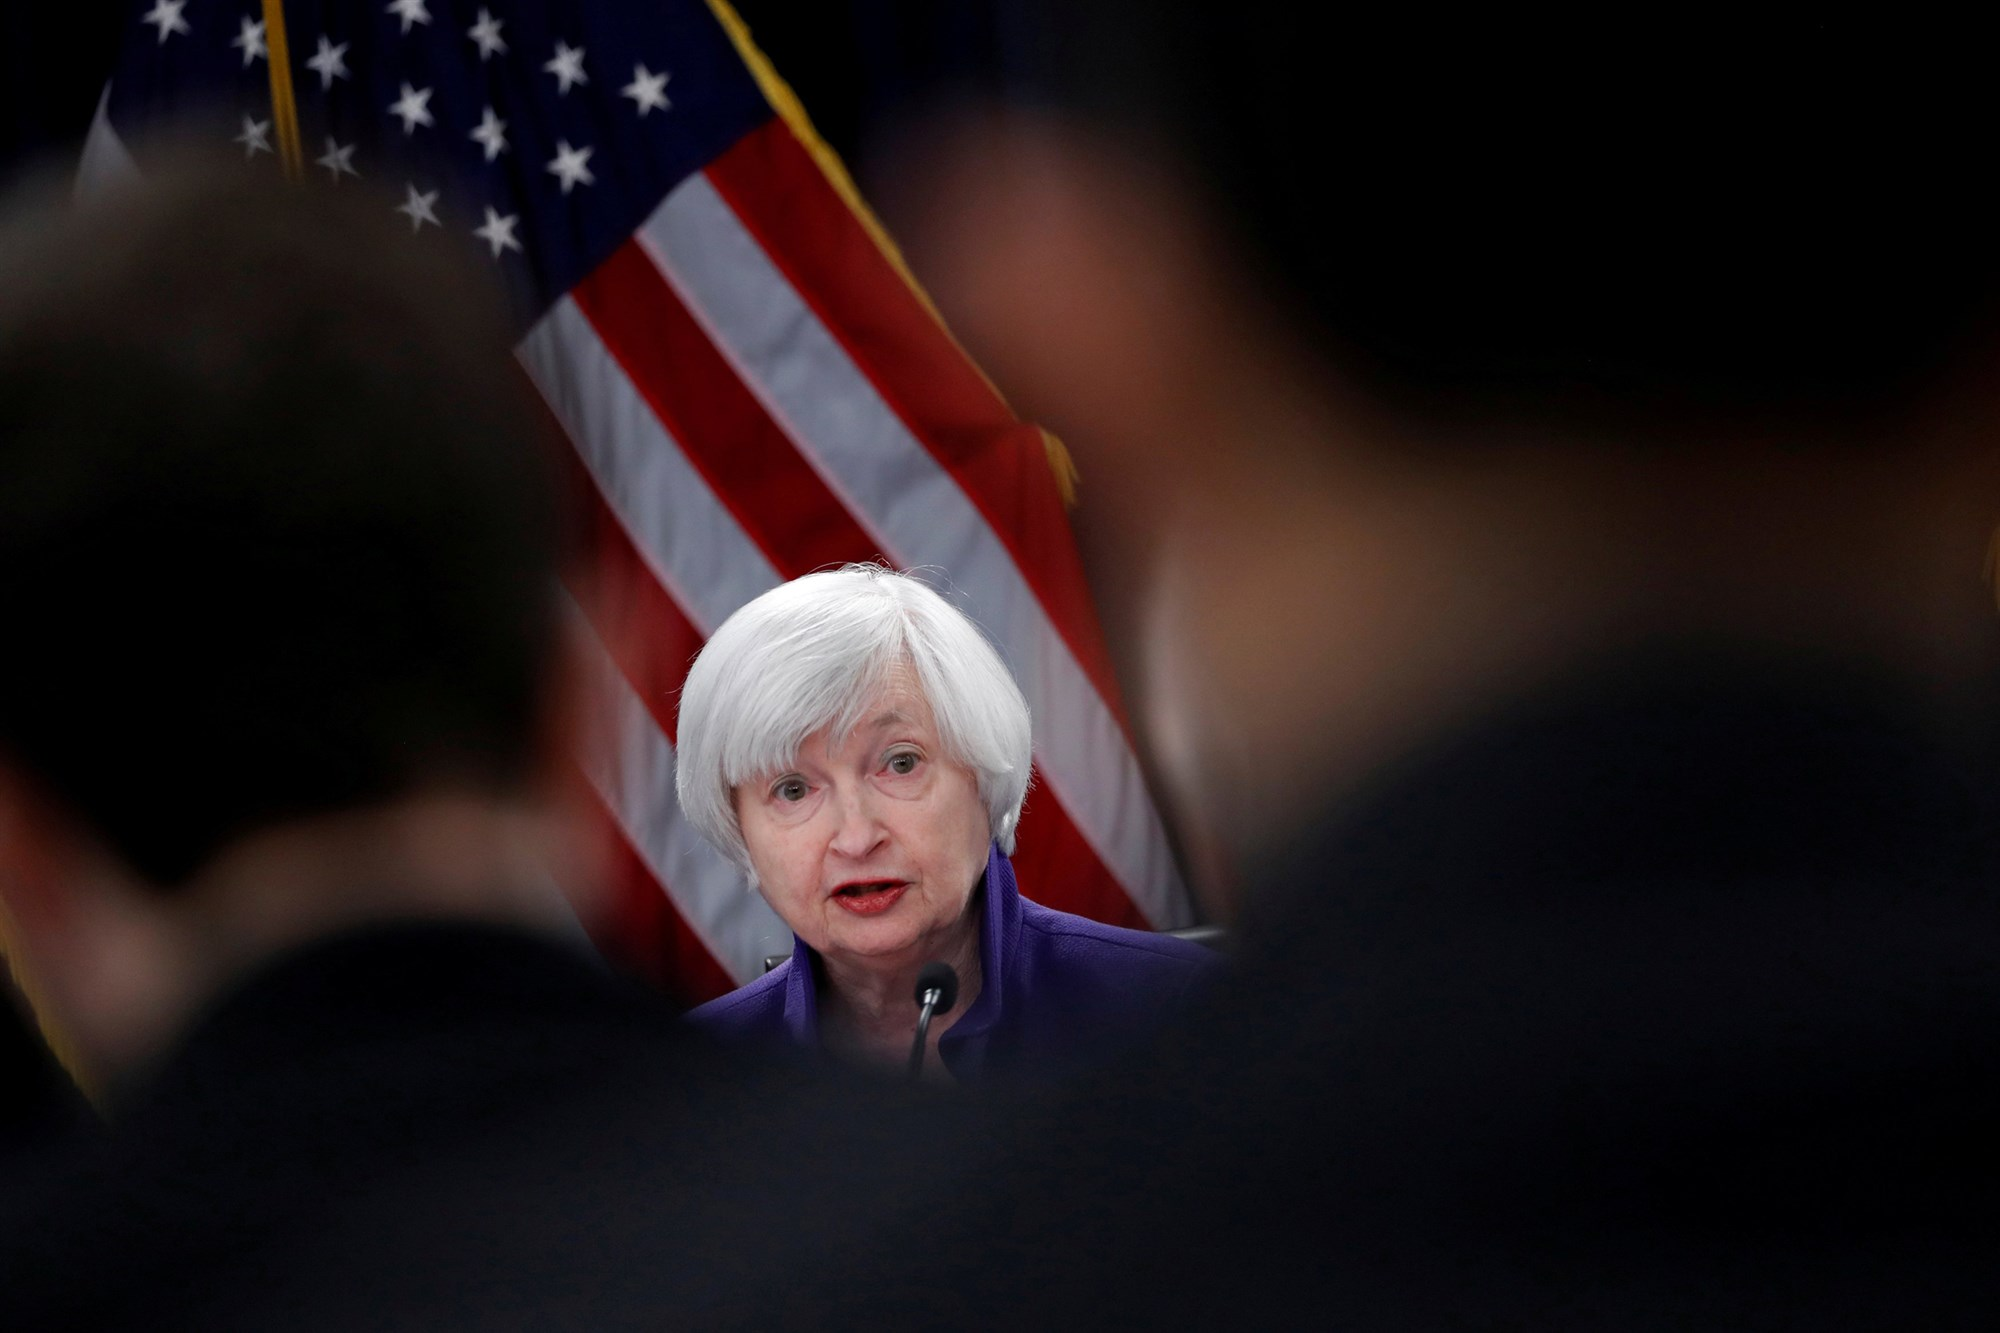 Yellen Pushes For Global Minimum Tax Rate For 'More Level Playing Field